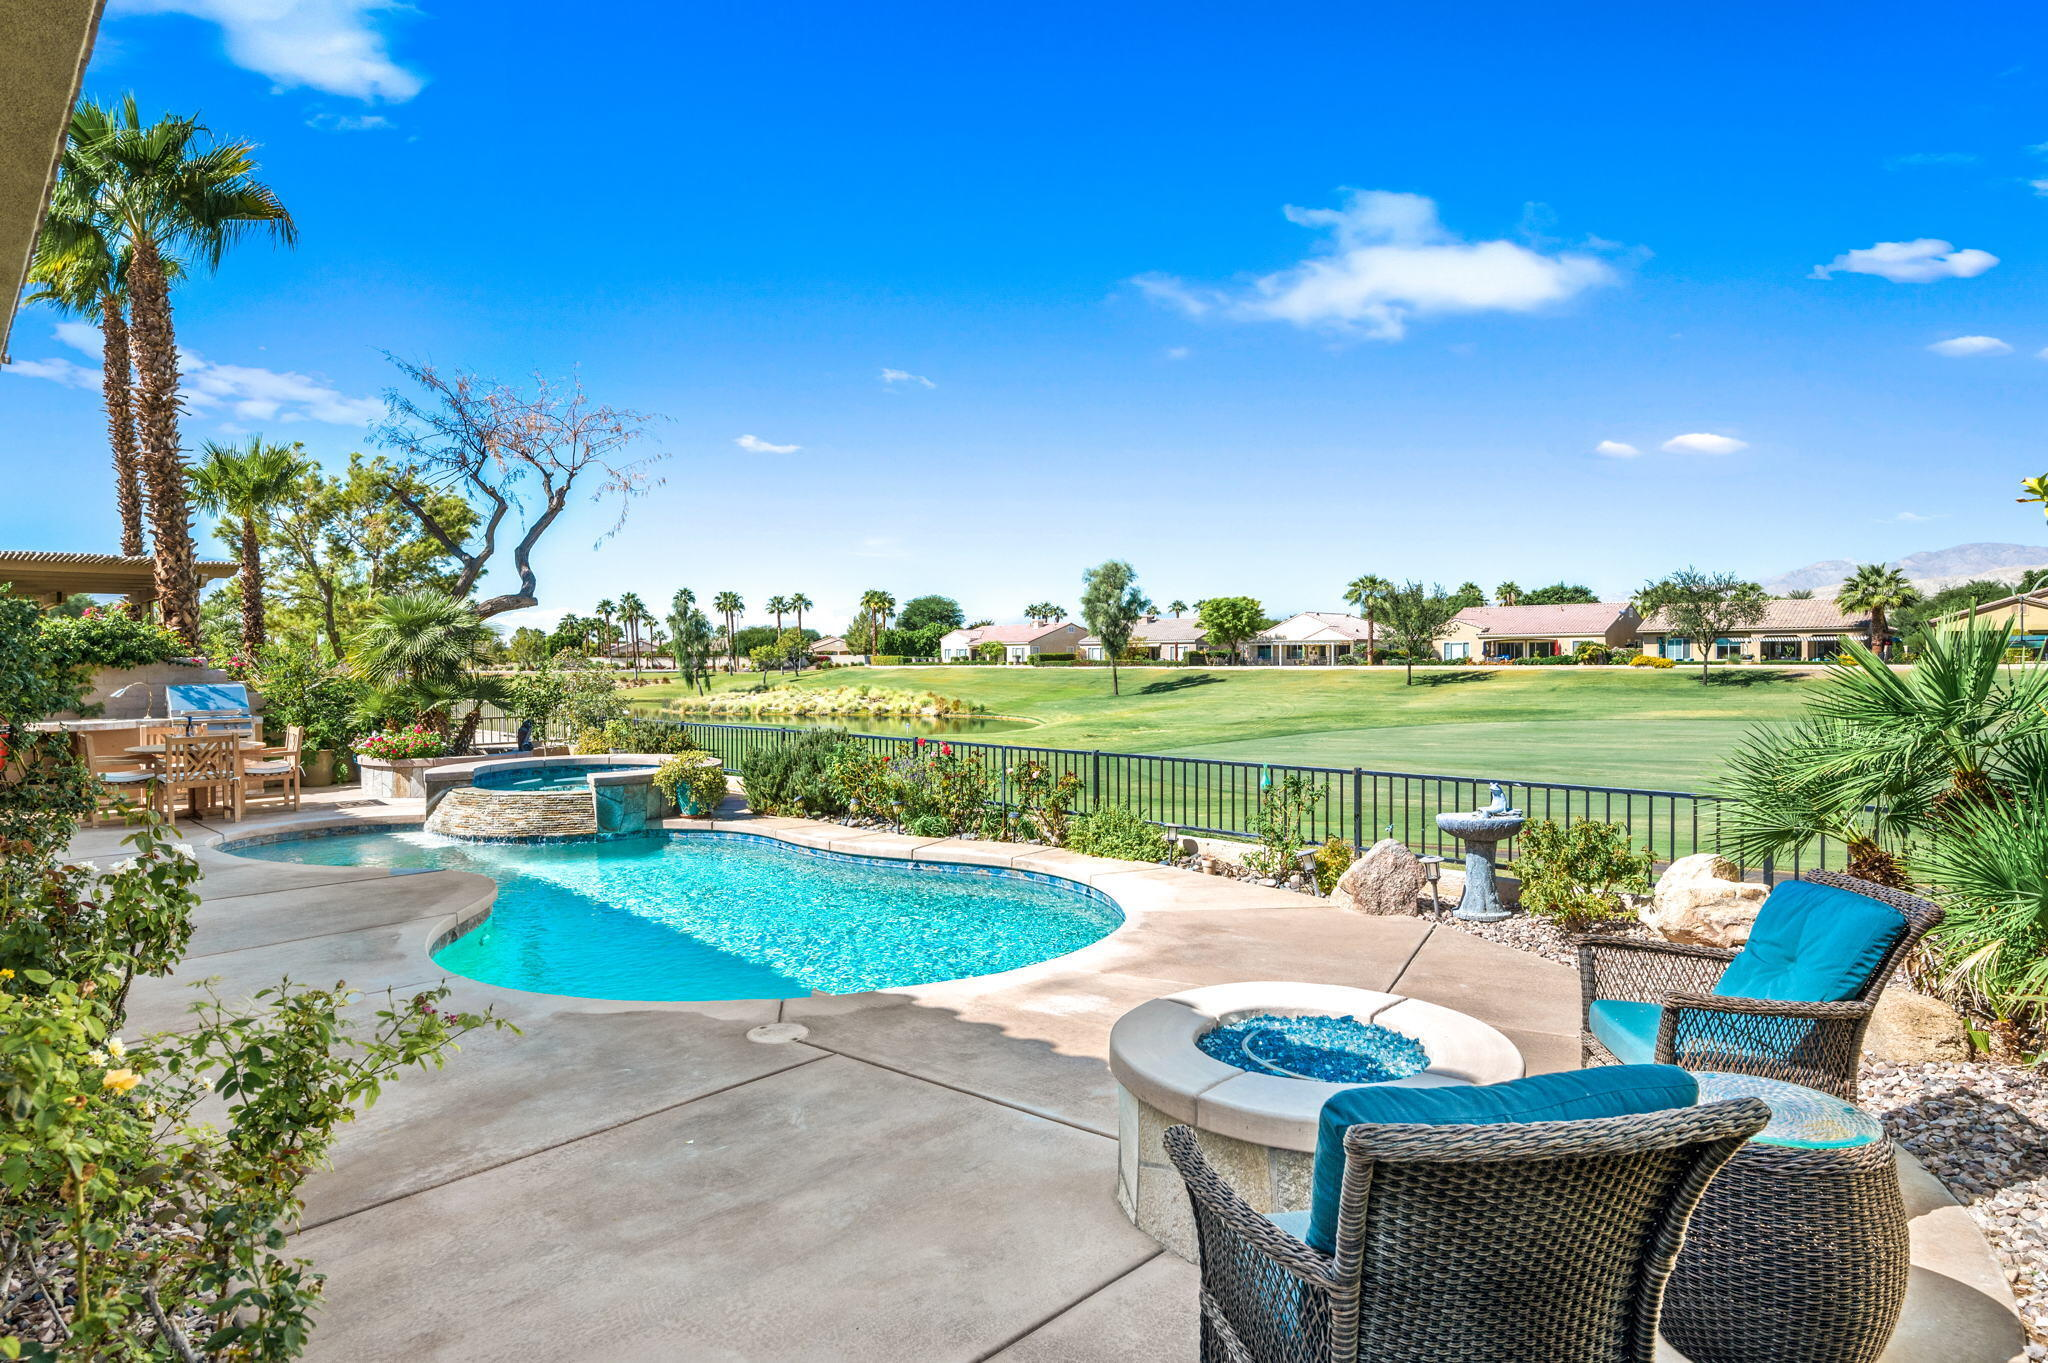 Enjoy... Panoramic Golf, Water & Mountain-Sunset Views! This favored Sorrano model offers 3 Bedrooms, 3 baths, Den/Office!  You'll be greeted with a Charming yet Private Courtyard entry.  Casita is Newer (home was formerly Madera) with an added Casita... built in Murphy Bed, easy care Laminate flooring, Granite Vanity, upgraded Mirror &  Beautiful Tile Shower! Separate AC/Heating for Casita!  Open & Inviting Great Room, Den/Office, Updated Porcelain flooring throughout main home, New Carpet in Bedrooms and Den.  You'll Love this Kitchen... w/ Granite Island, Stainless Steel Appliances, plenty of cabinet space, pantry and breakfast nook! Fridge Included. King Sized Master Bedroom with a view! Master Bath w/ separate tub & shower, dual sink vanity, walk in closet.  Guest Bedroom is Queen Sized with bath adjacent.  Slider door from Dining area to covered patio with Ceiling Fan &  Stainless Steel Industrial Misters!  Beautiful Pool, Spa, BBQ Island, Fire Pit... this home checks off all the boxes!  Individual Laundry Room w/Deep Sink & plenty of Cabinets for Extra Storage! Two Car Garage with 220 to accommodate your EV!  This home is located Centrally within the community to afford you easy access to both clubhouses, Shadows Restaurant, Golf!  The North facing leisure allows you to Enjoy your view all the time... no need to block out the Sun and your lovely view! Welcome Home